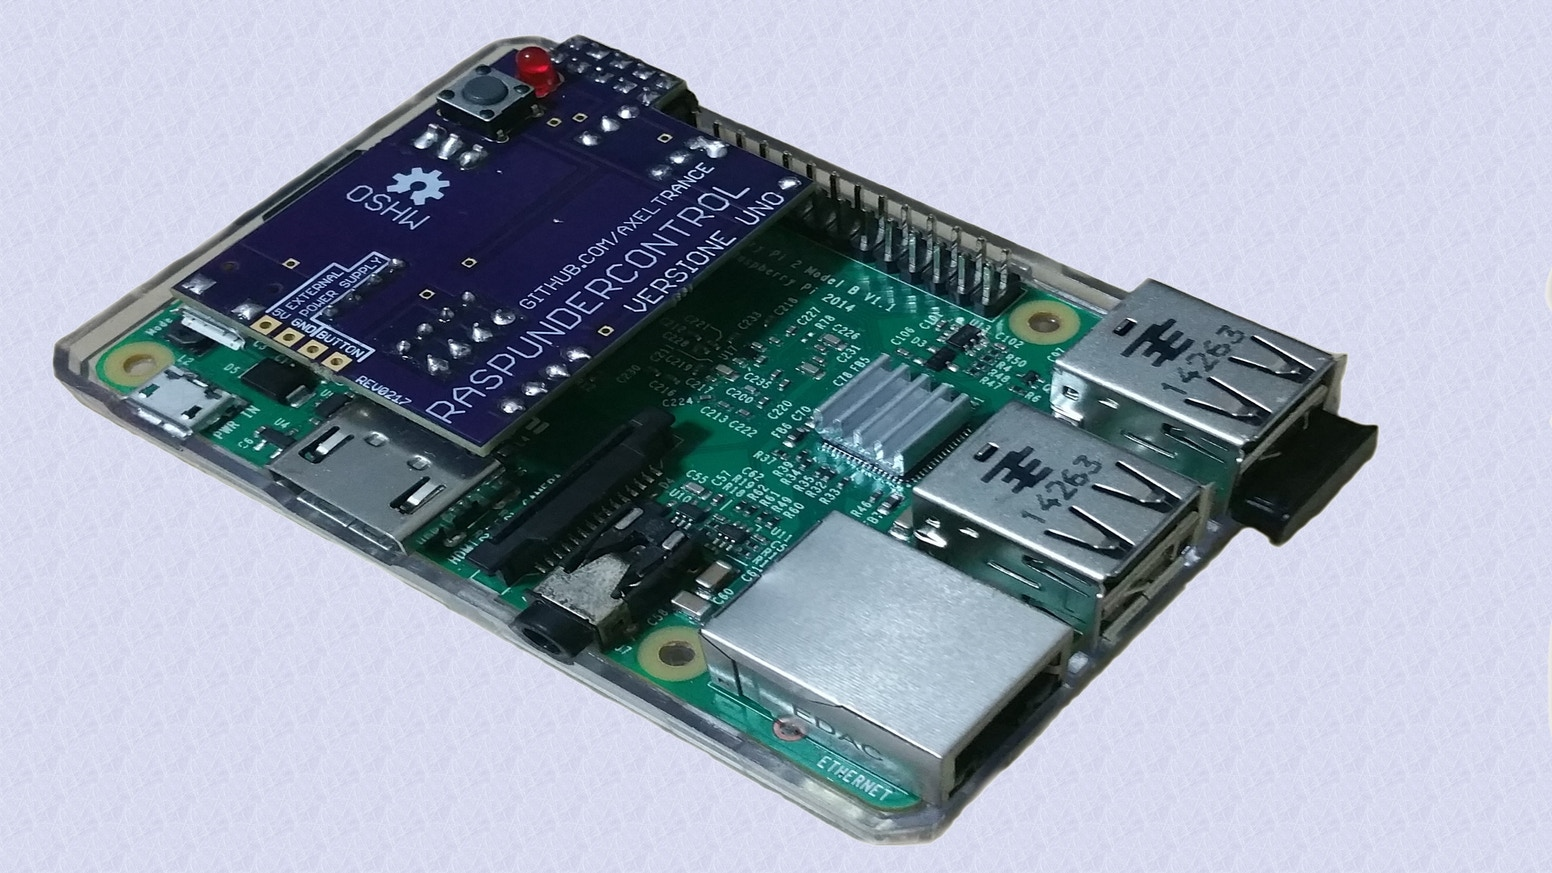 Smart Power Supply Unit for Raspberry Pi Family with infrared receiver